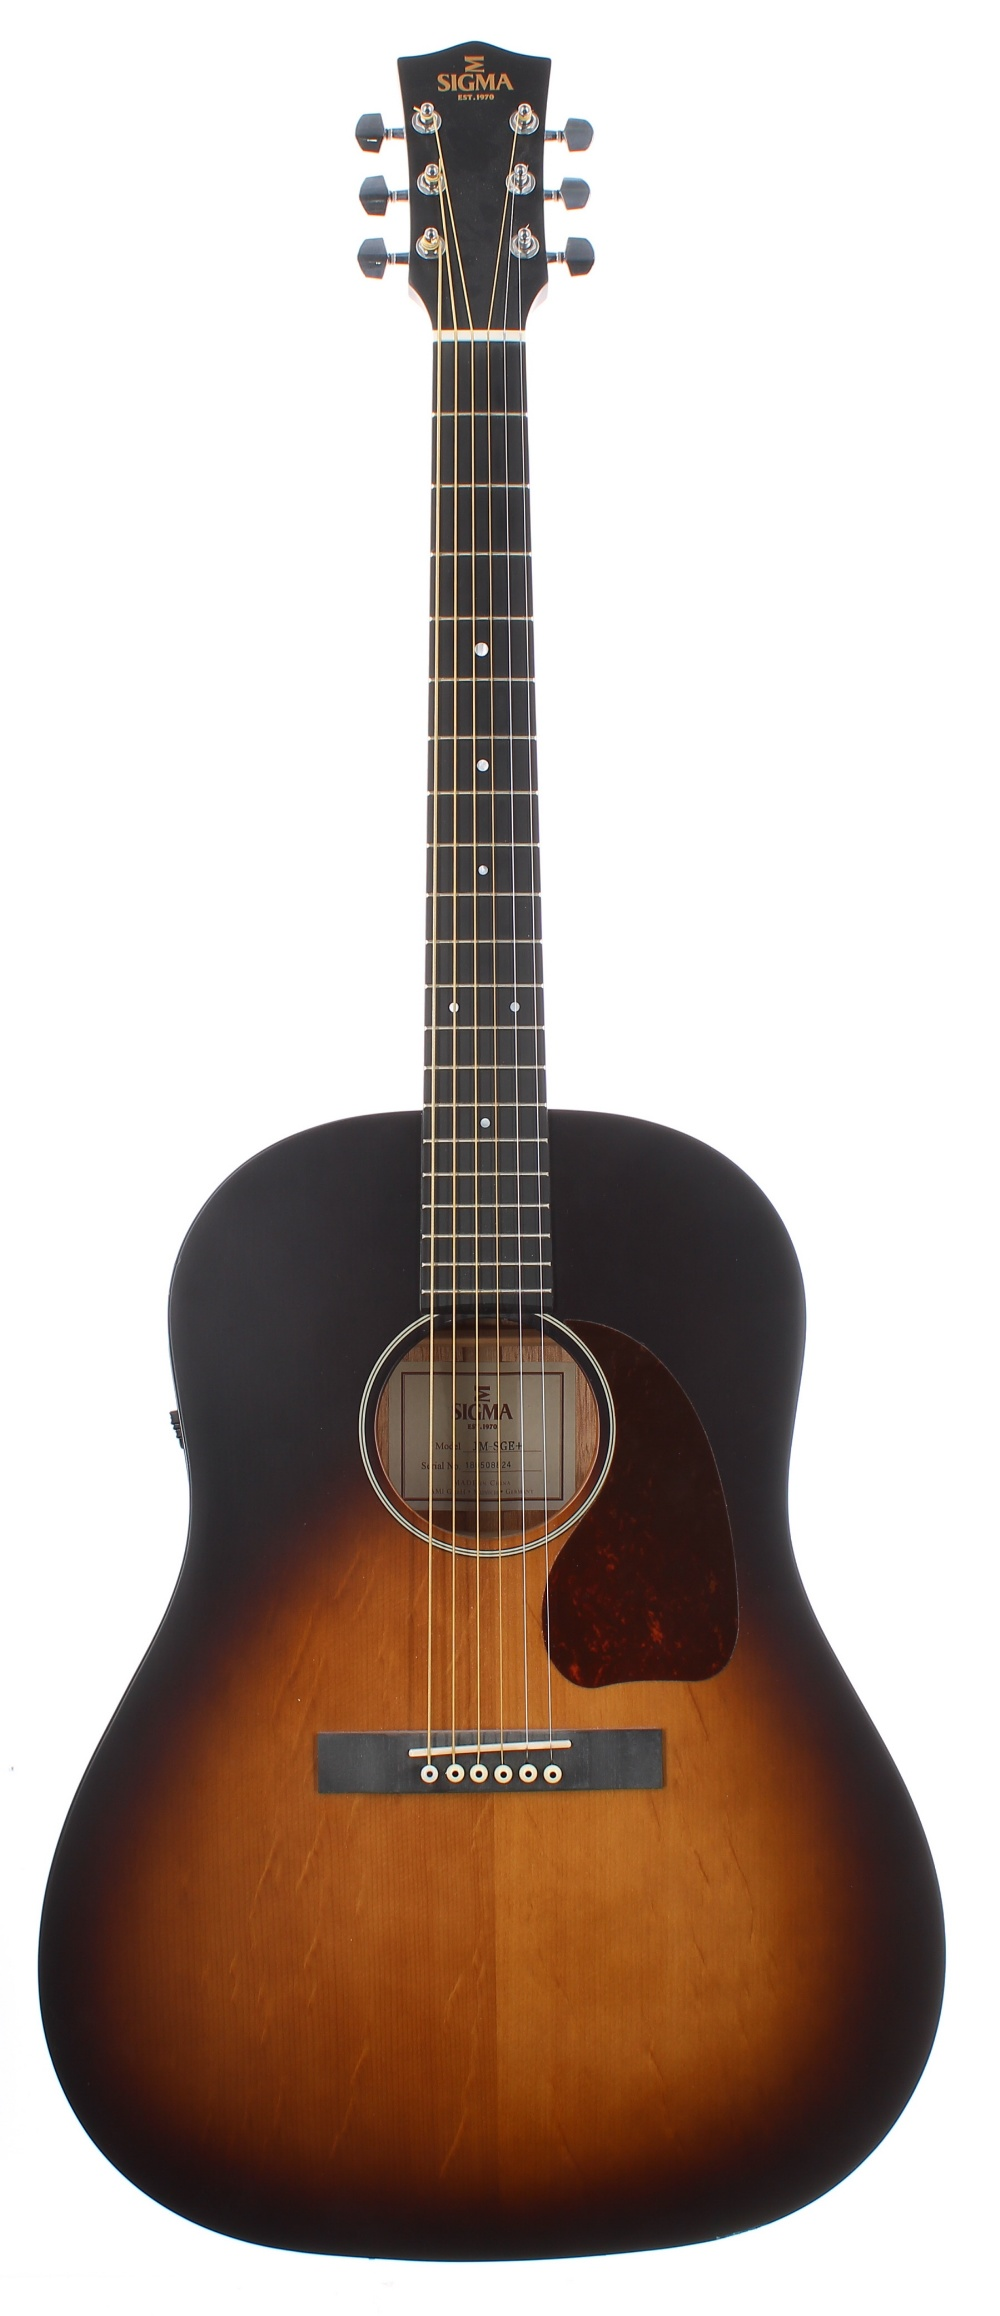 2018 Sigma JM-SGE+ electro-acoustic guitar, made in China, ser. no. 18xxxxx24; Finish: vintage